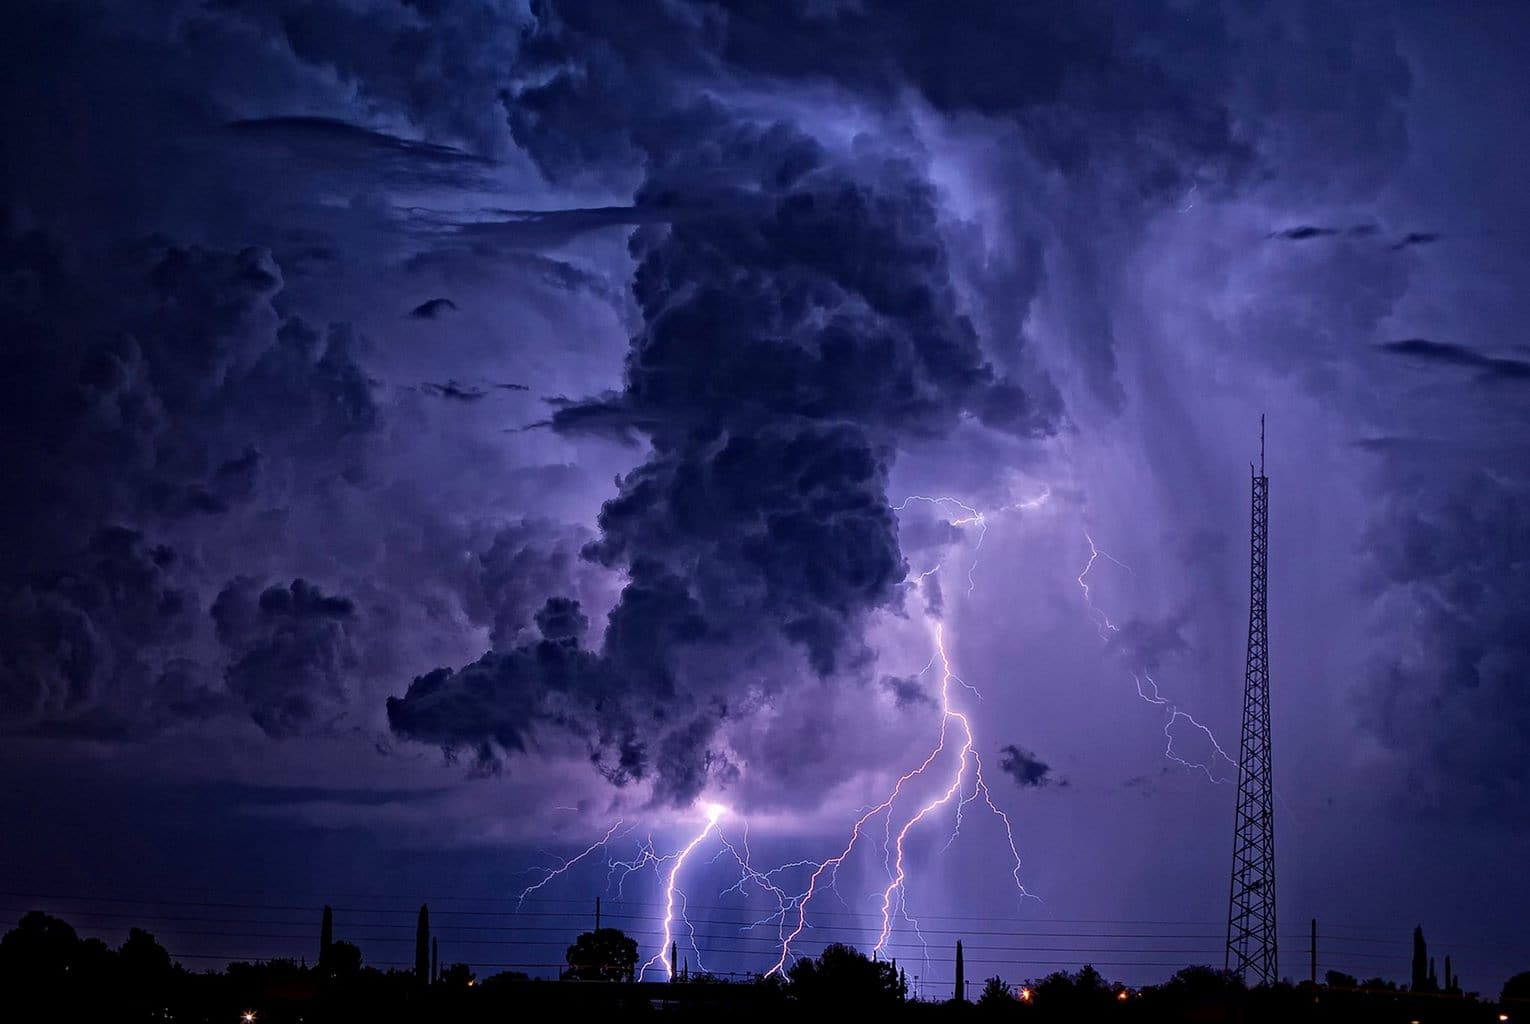 15 August, 2010. Two monsoon storms collide, and create a beautiful scene.